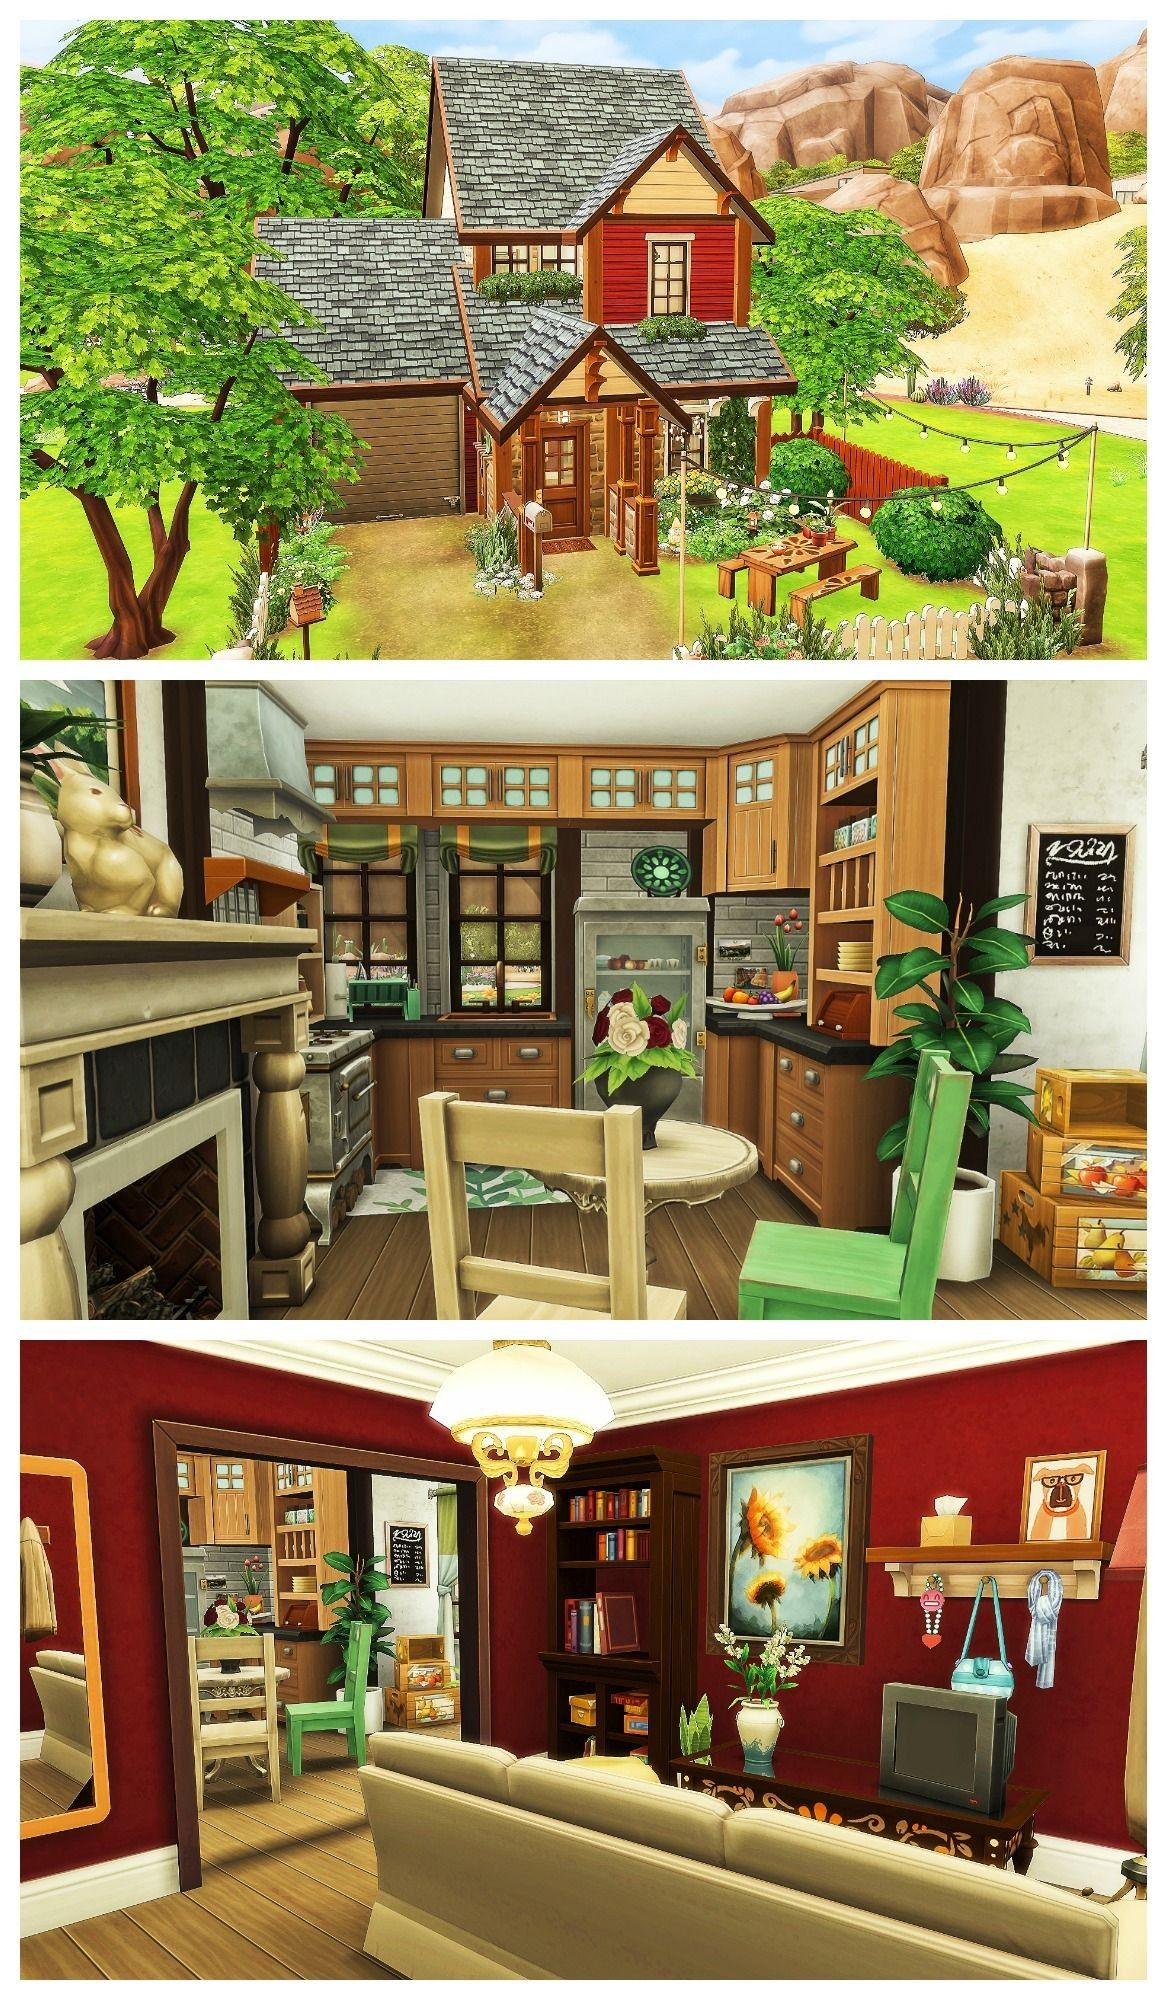 Pin By Danni L On Tiny Home Insp In 2020 Sims House